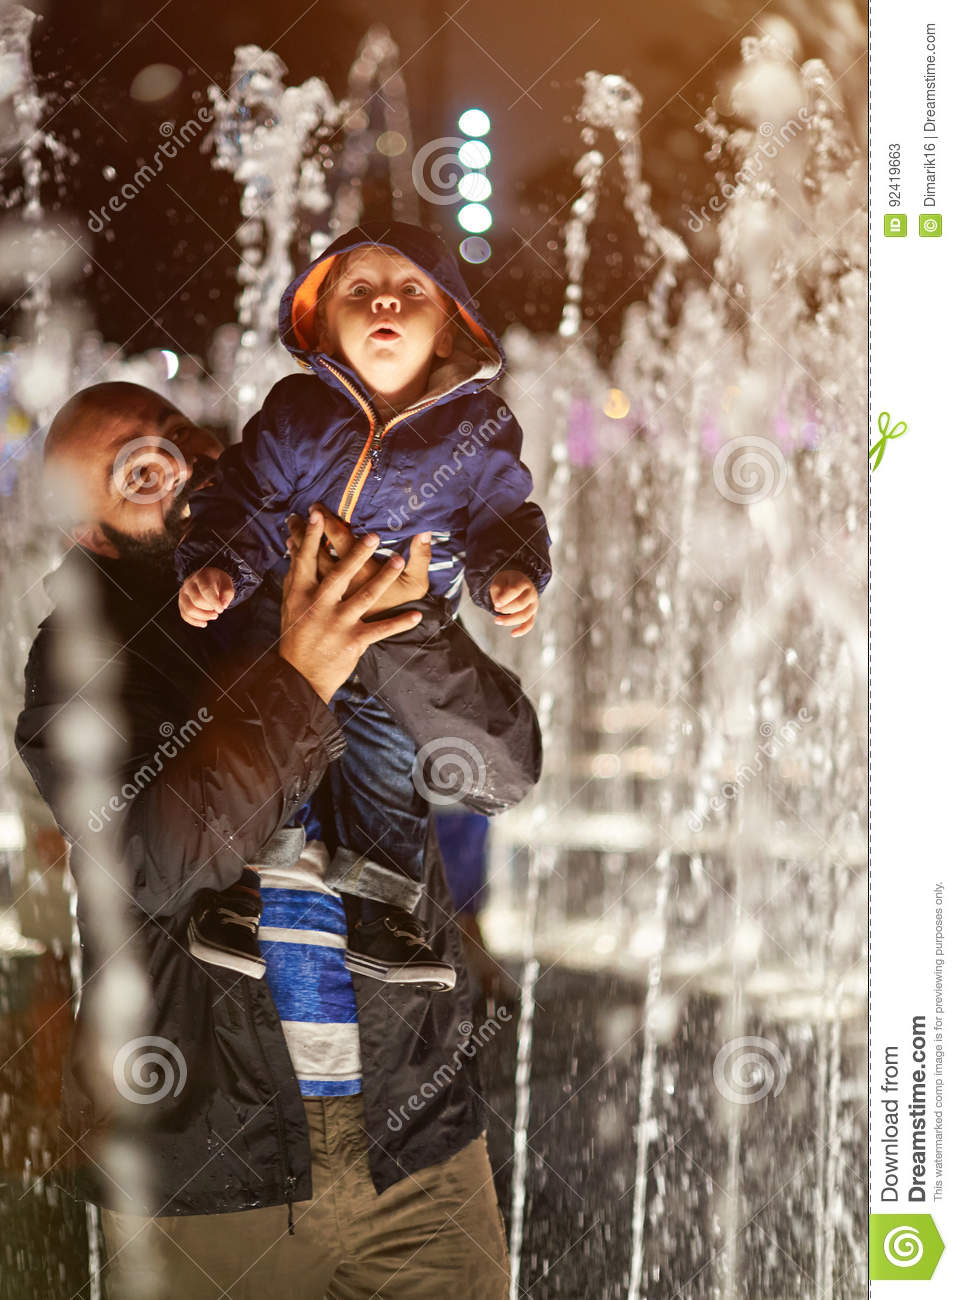 Father play with kid in fountain